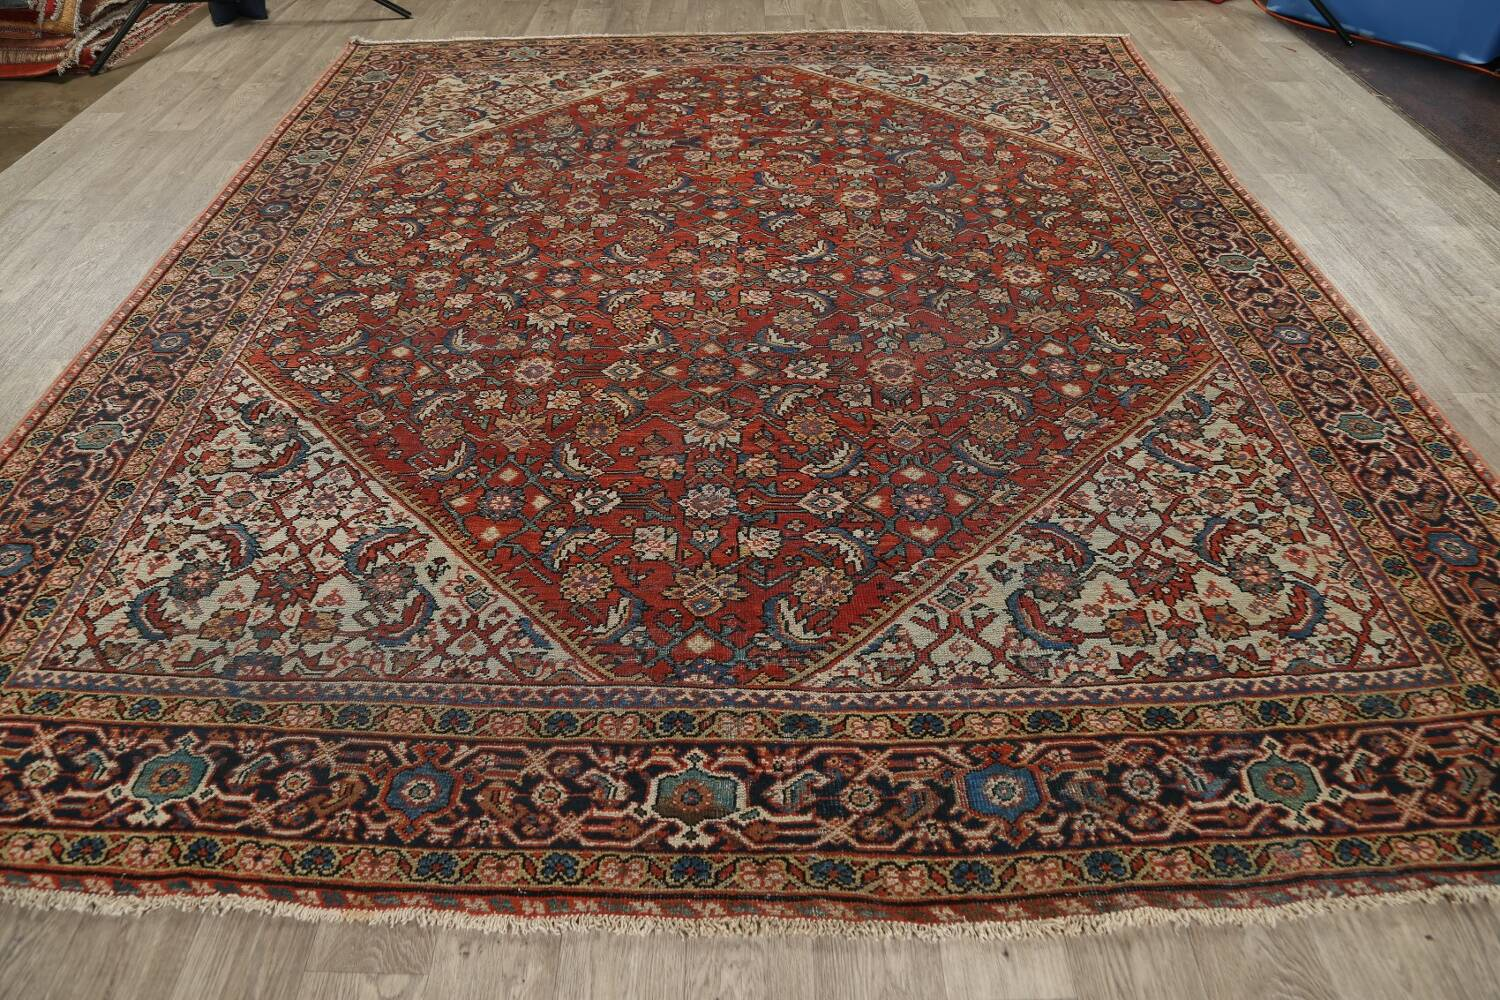 Pre-1900 Vegetable Dye Sultanabad Persian Area Rug 9x11 image 15